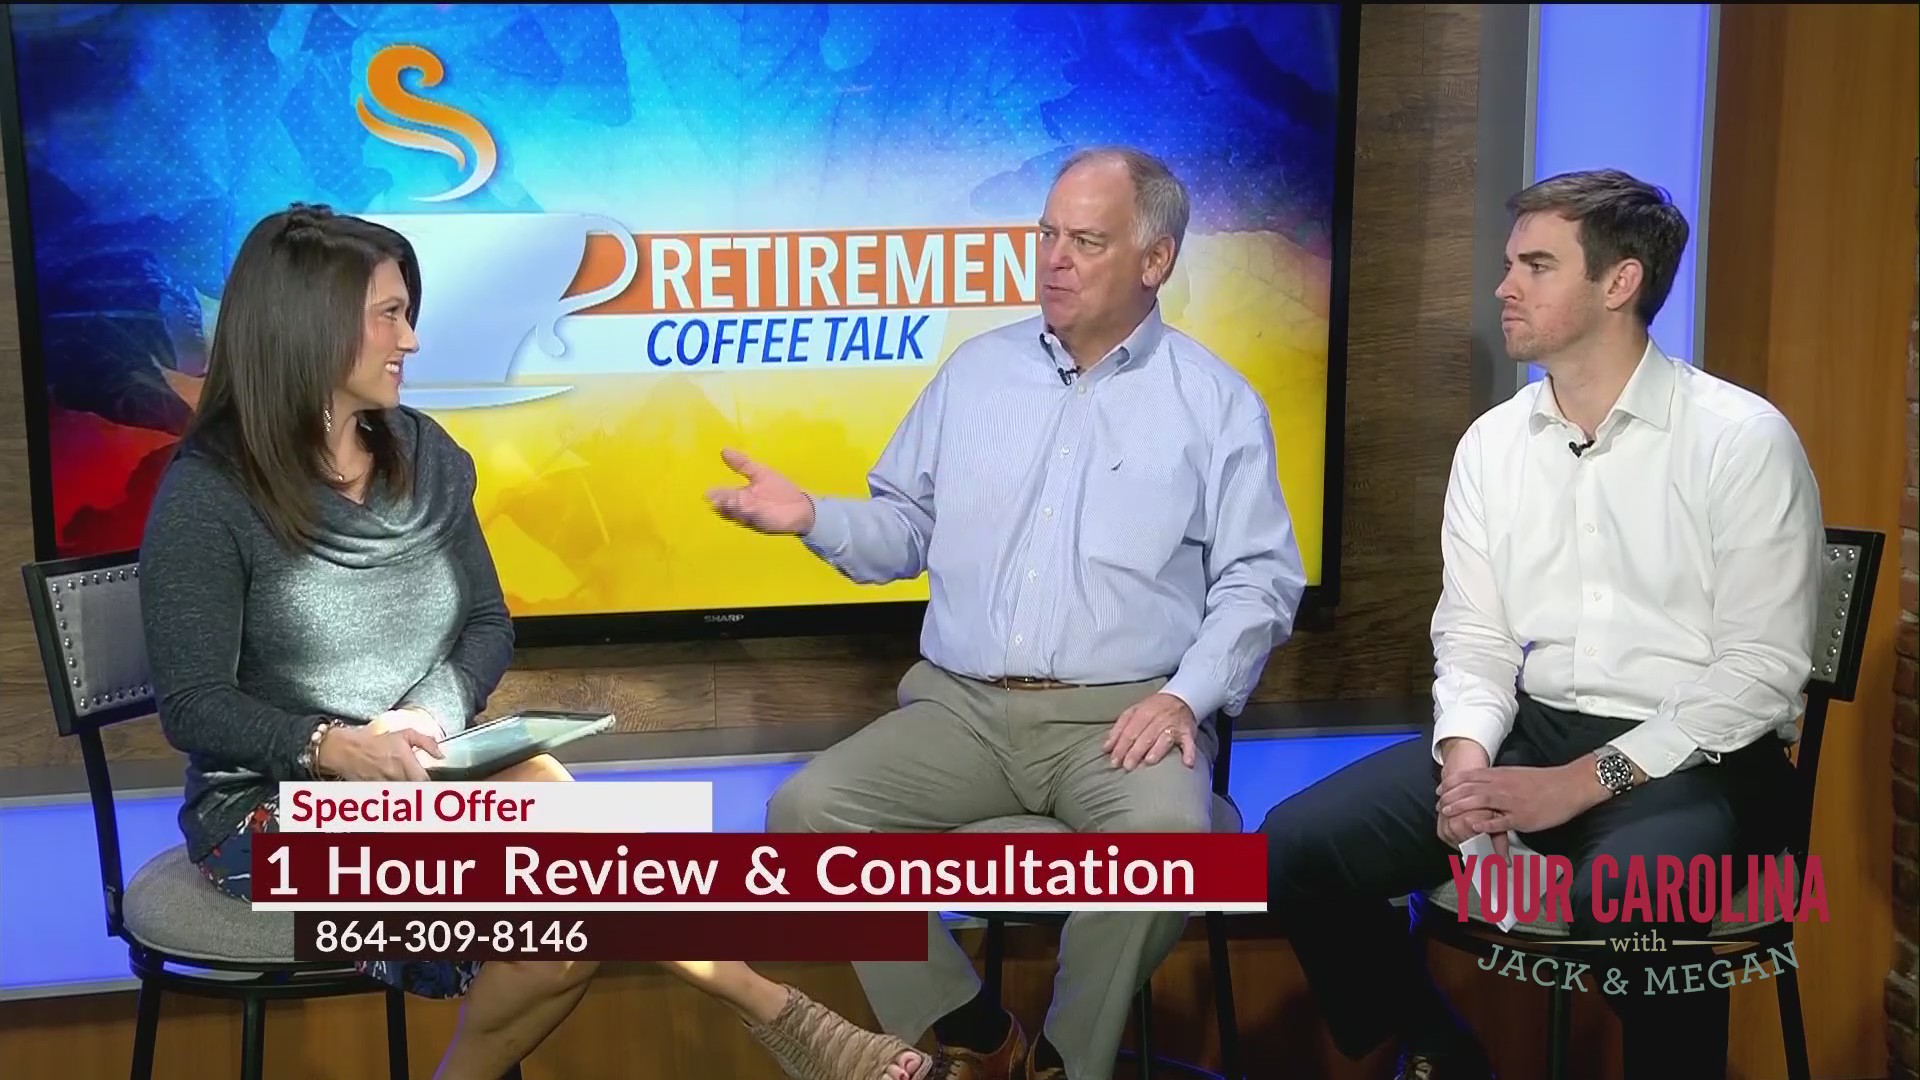 Retirement Coffee Talk - Taking Inventory Of Your Retirement Portfolio